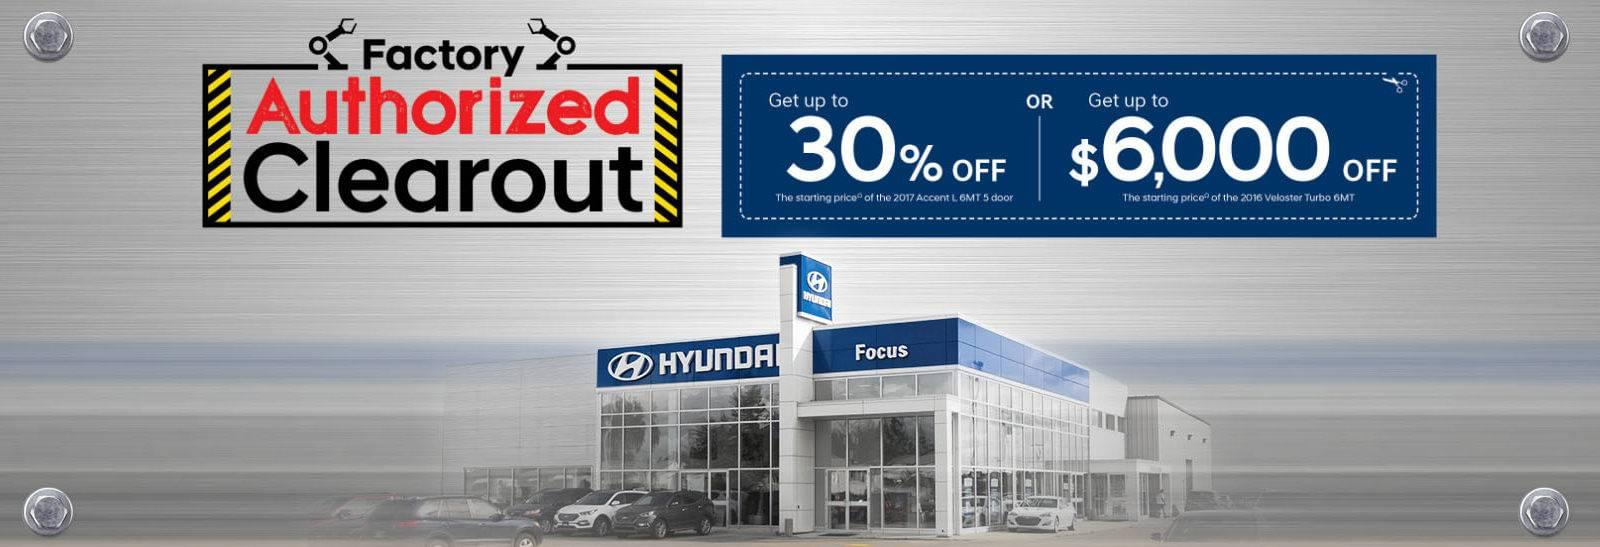 AUTHORIZED-APRIL-HYUNDAI-HOMEPAGE-BANNER-NEW